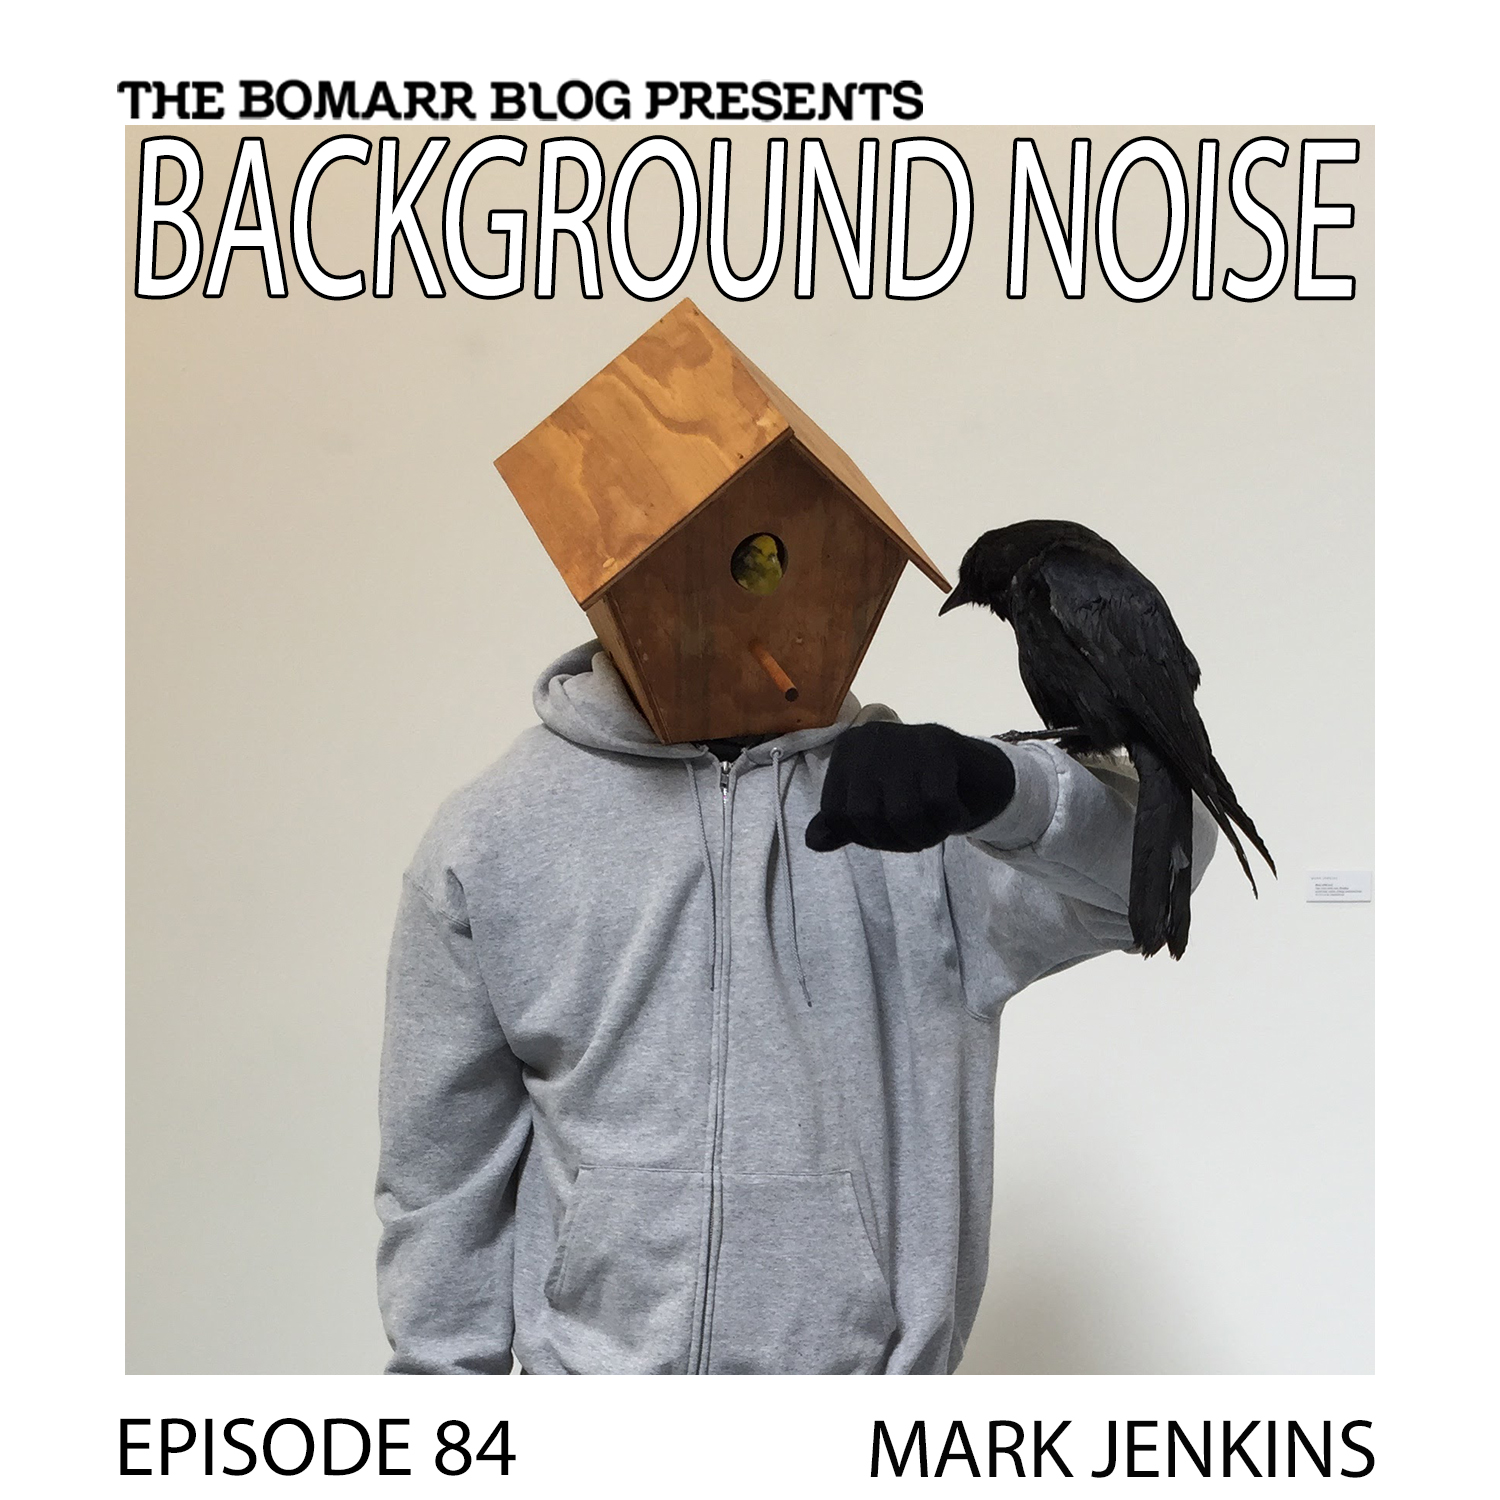 THE BACKGROUND NOISE PODCAST SERIES FOCUSES ON THE MUSIC THAT ARTISTS LISTEN TO WHEN THEY WORK, WHAT MUSIC INSPIRES THEM, OR JUST MUSIC THEY LIKE. THIS WEEK, IN EPISODE 84, THE FOCUS IS ON ARTIST MARK JENKINS